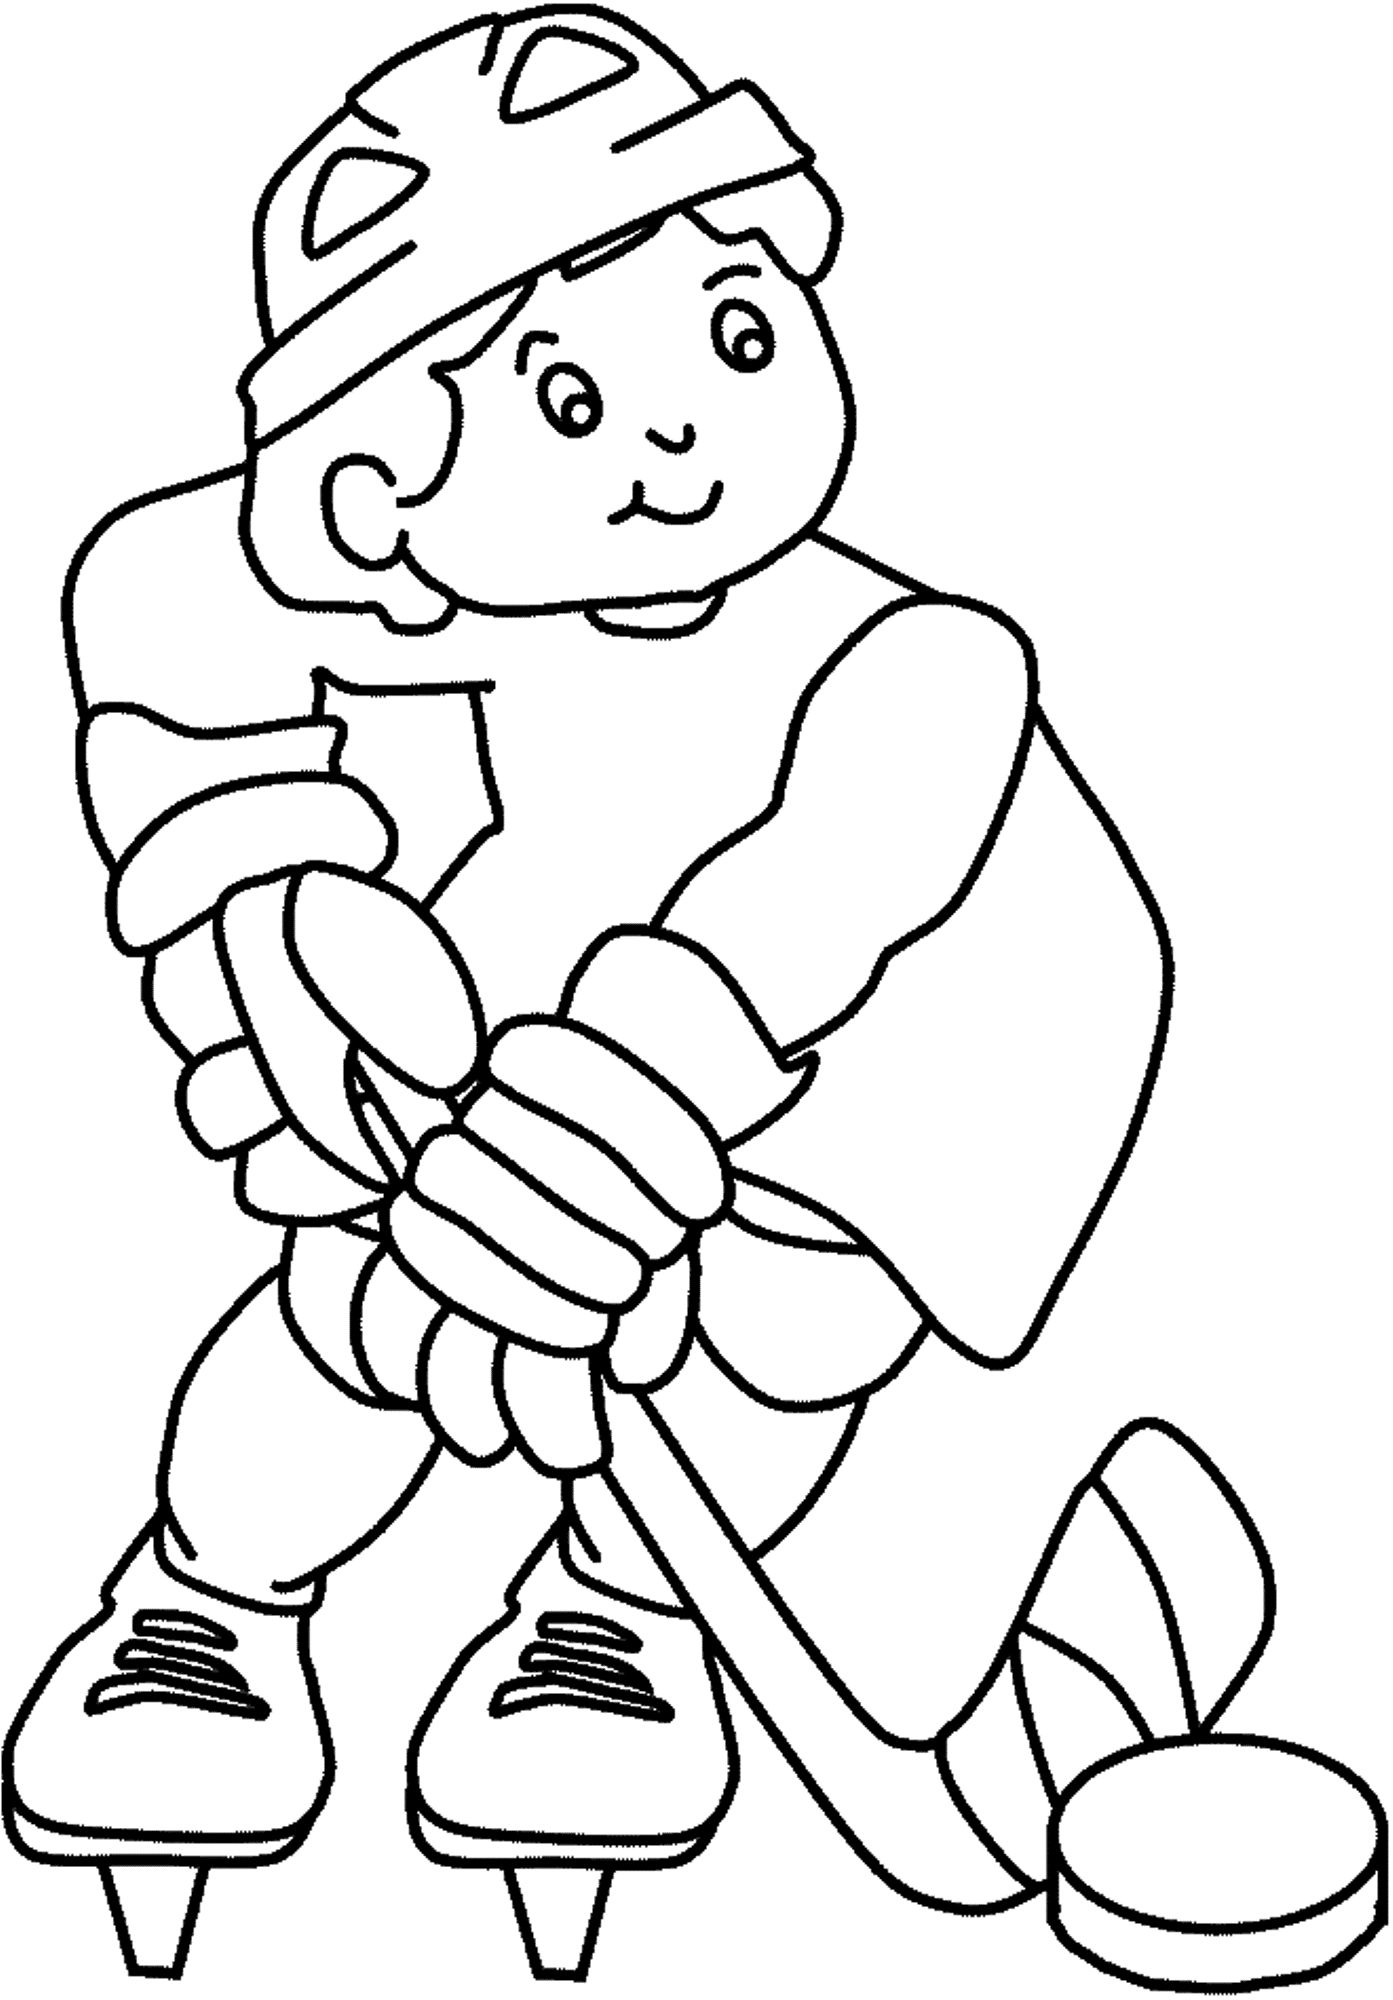 Hockey Coloring Pages For Kids Also Extraordinary Hockey Coloring ...